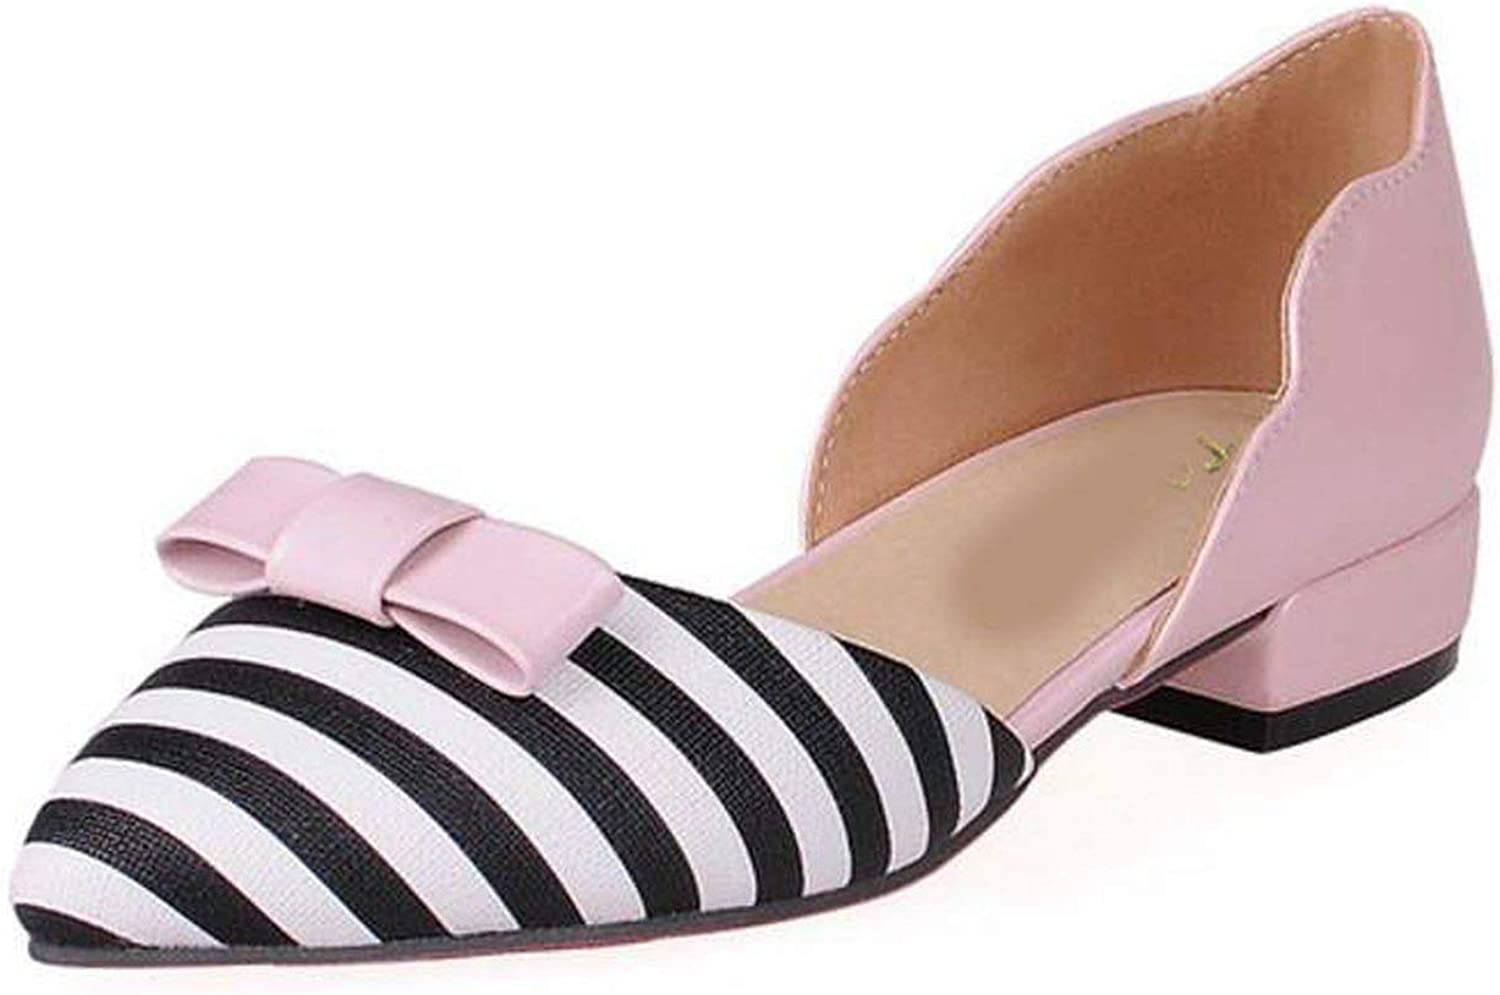 Houfeoans Women shoes Bownot High Heel Sandals Pointed Toe Striped Thick Heel Sandals Summer shoes Footwear